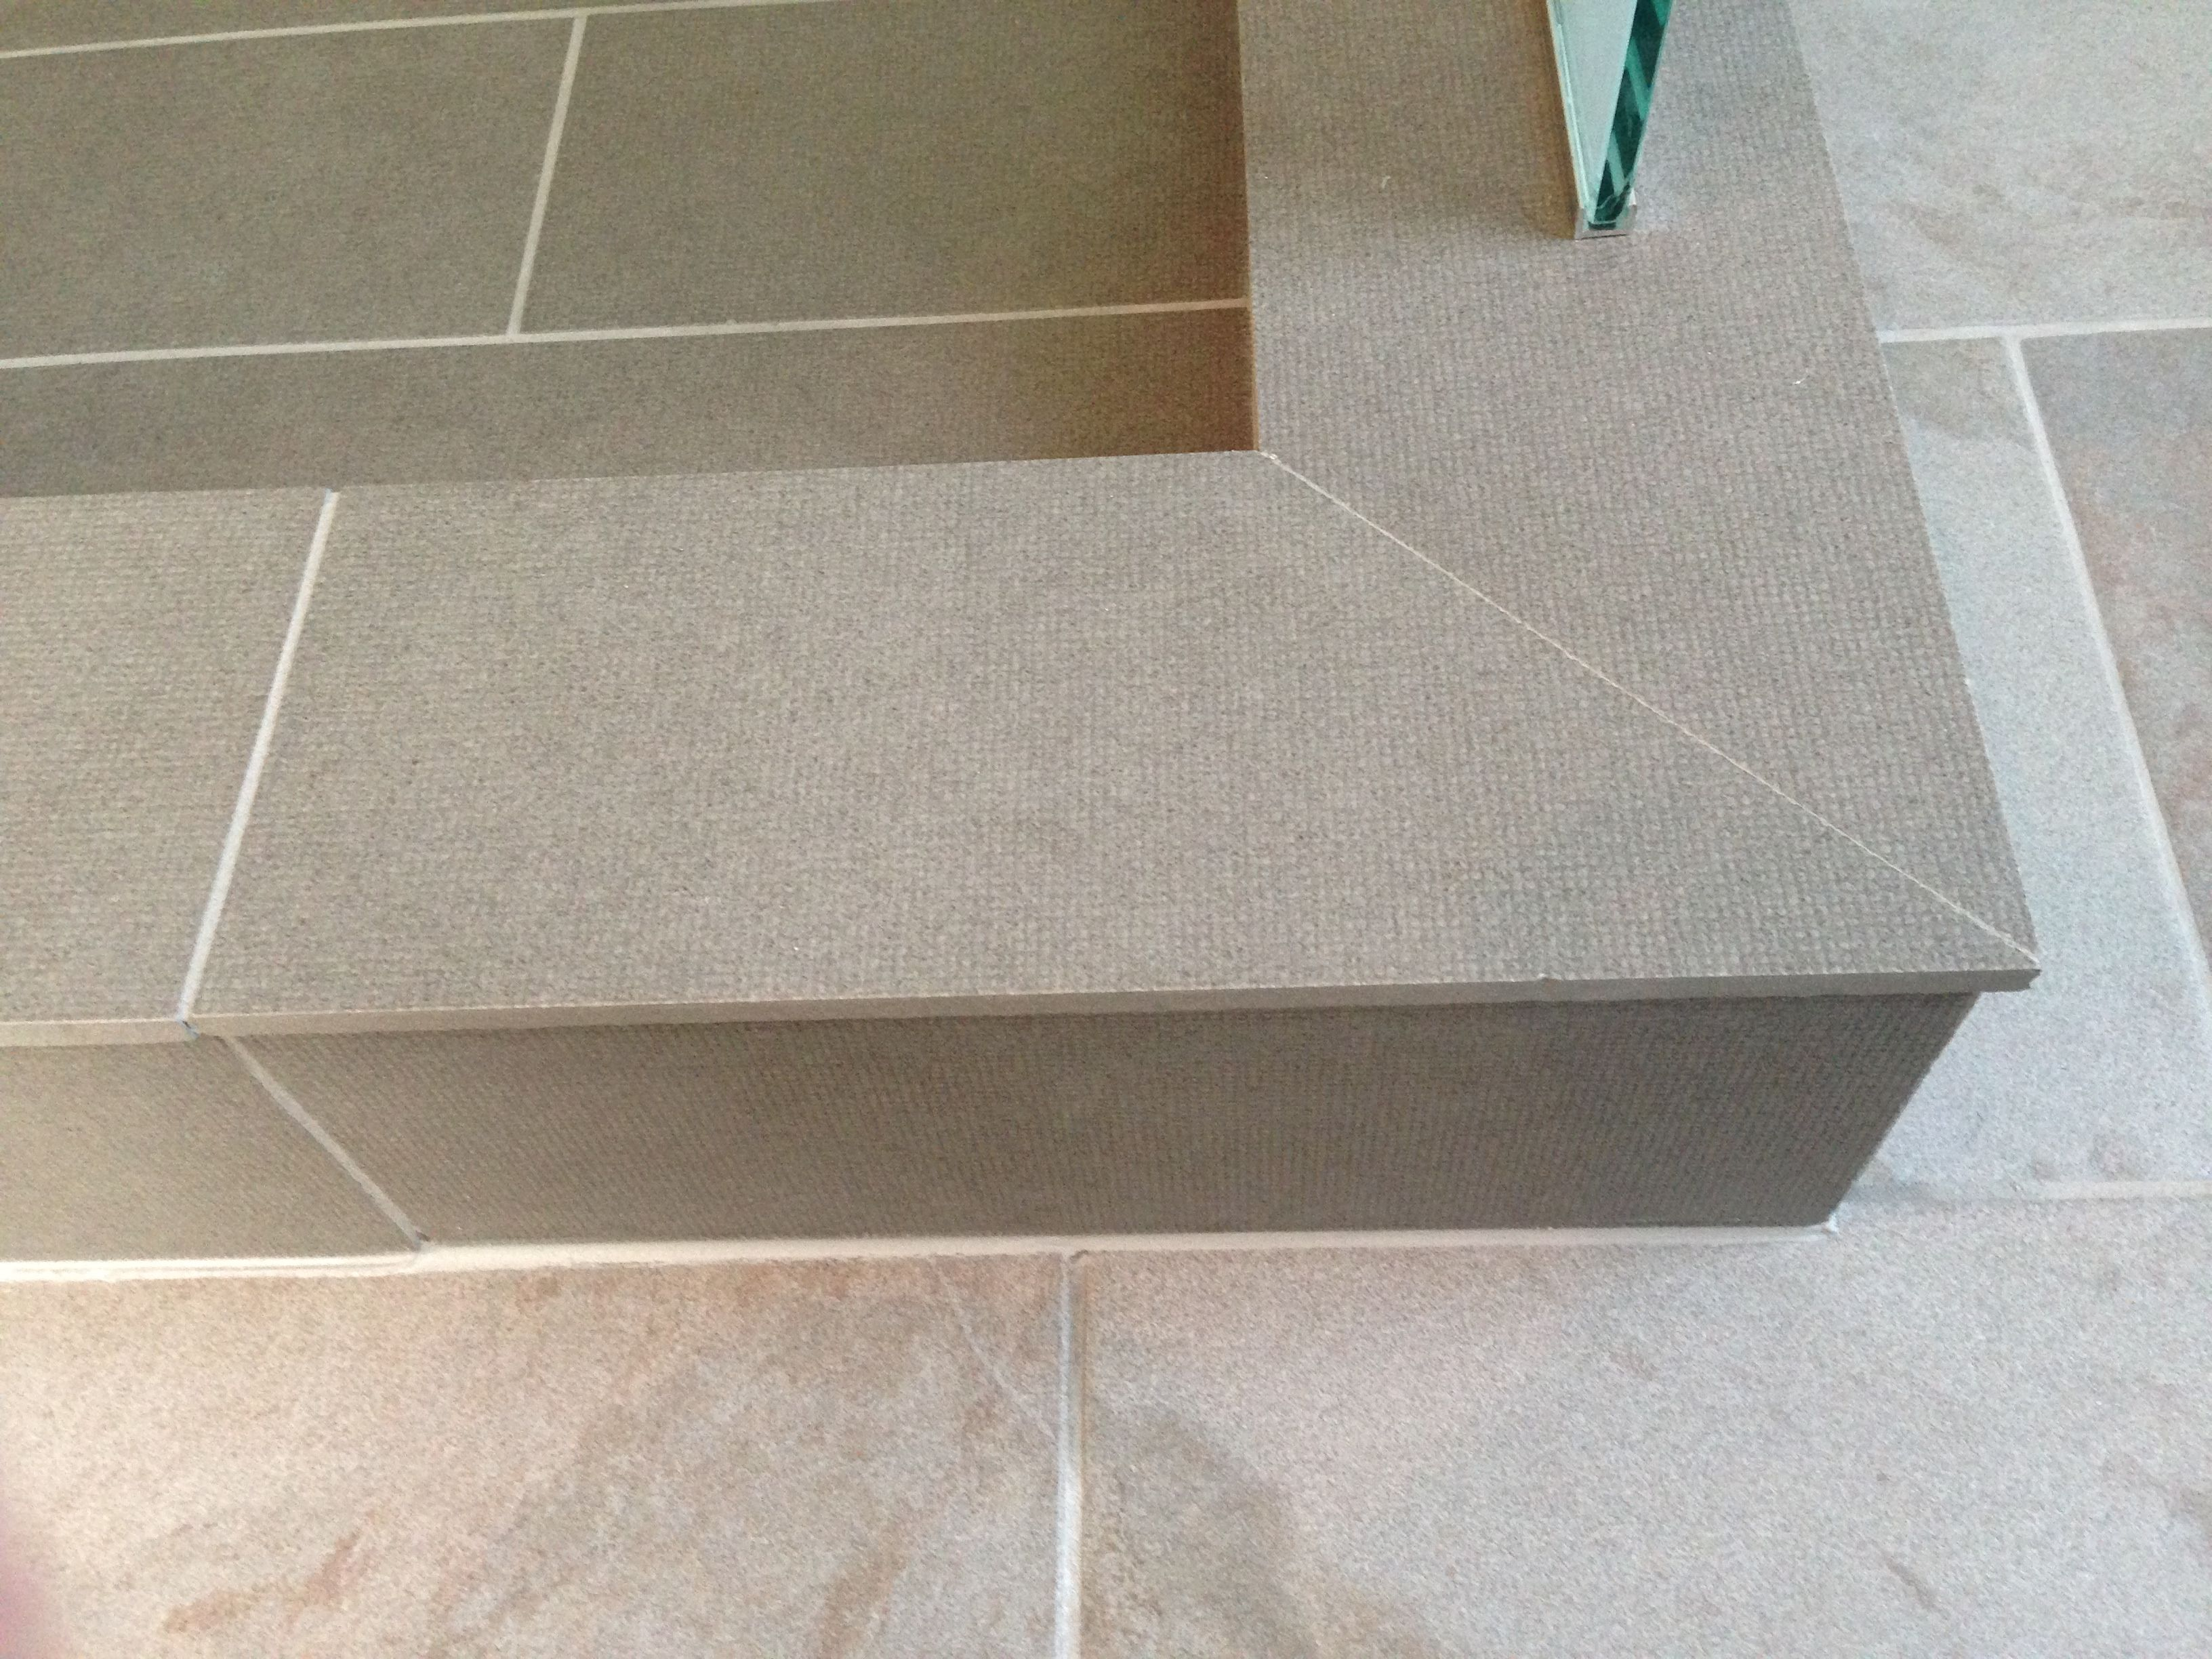 Mitre of outside corner of shower curb | Tile edge, Shower curb